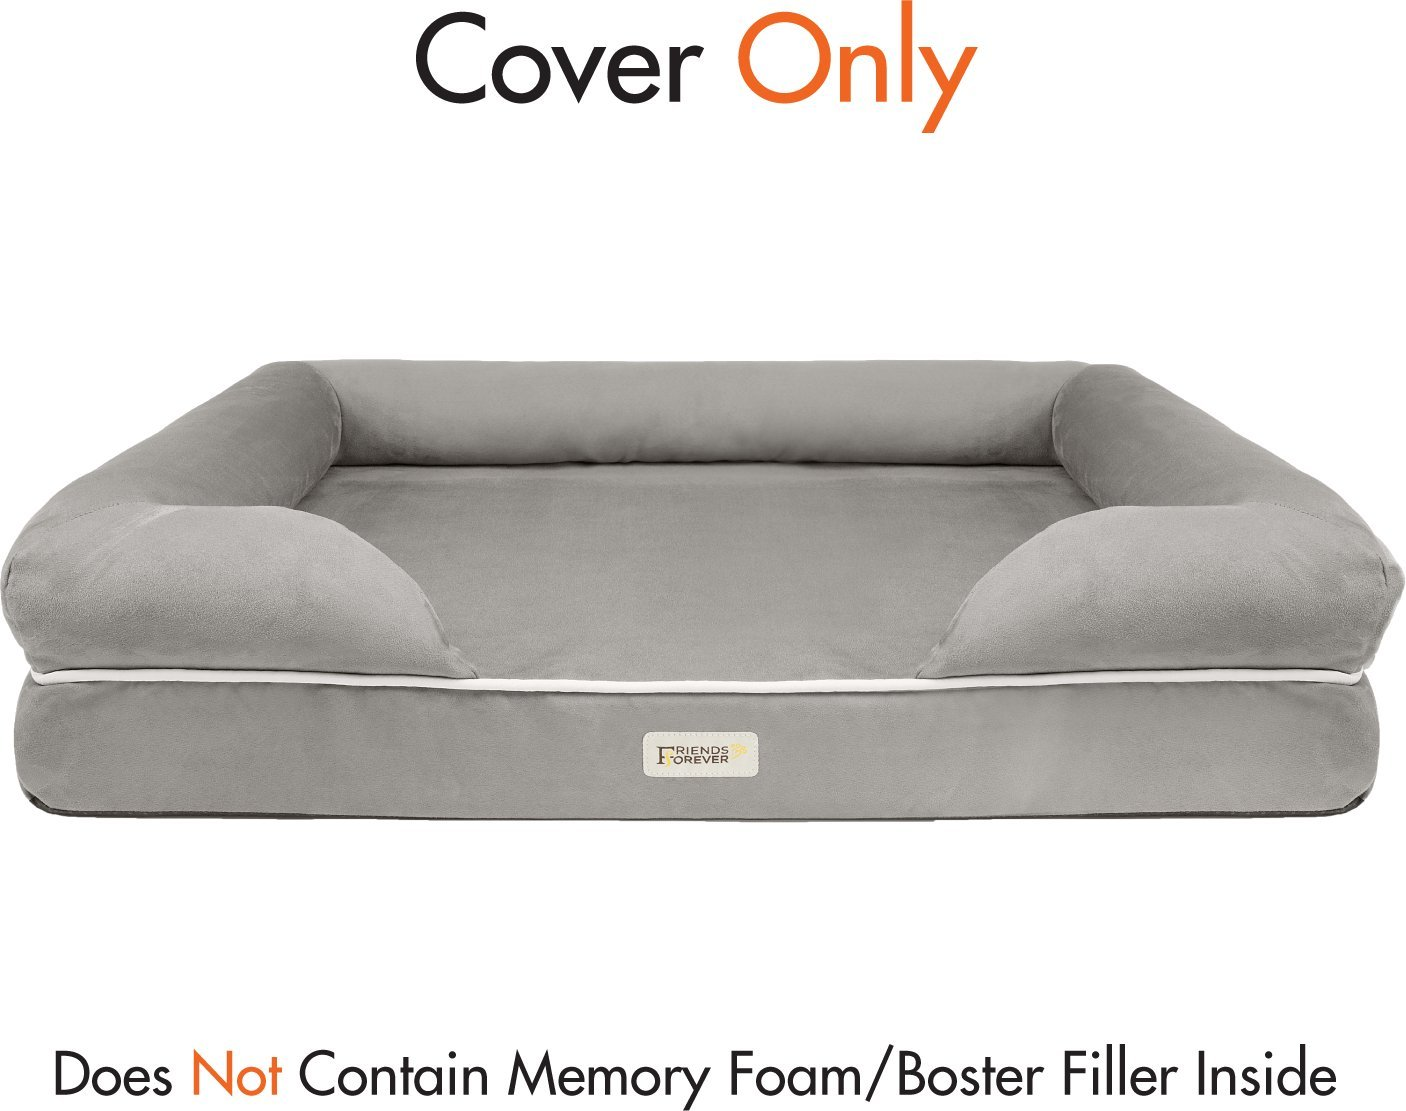 Friends Forever 100% Suede Super Deluxe Upgrade/Replacement Cover Bed/Couch Dog Bed (Pewter XL Cover)